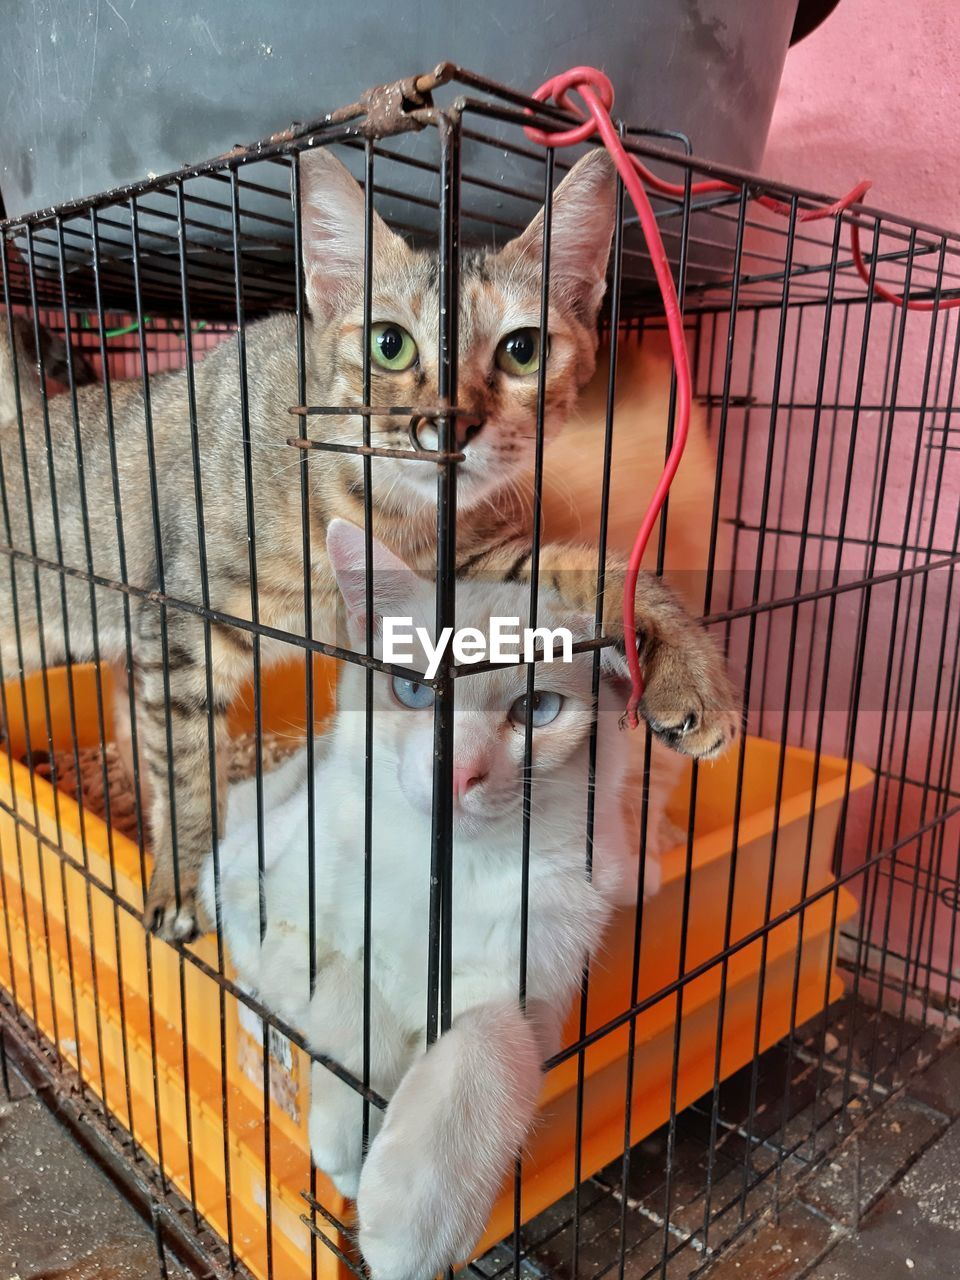 mammal, pets, domestic, domestic animals, one animal, cage, feline, cat, vertebrate, domestic cat, portrait, looking at camera, metal, animals in captivity, close-up, no people, whisker